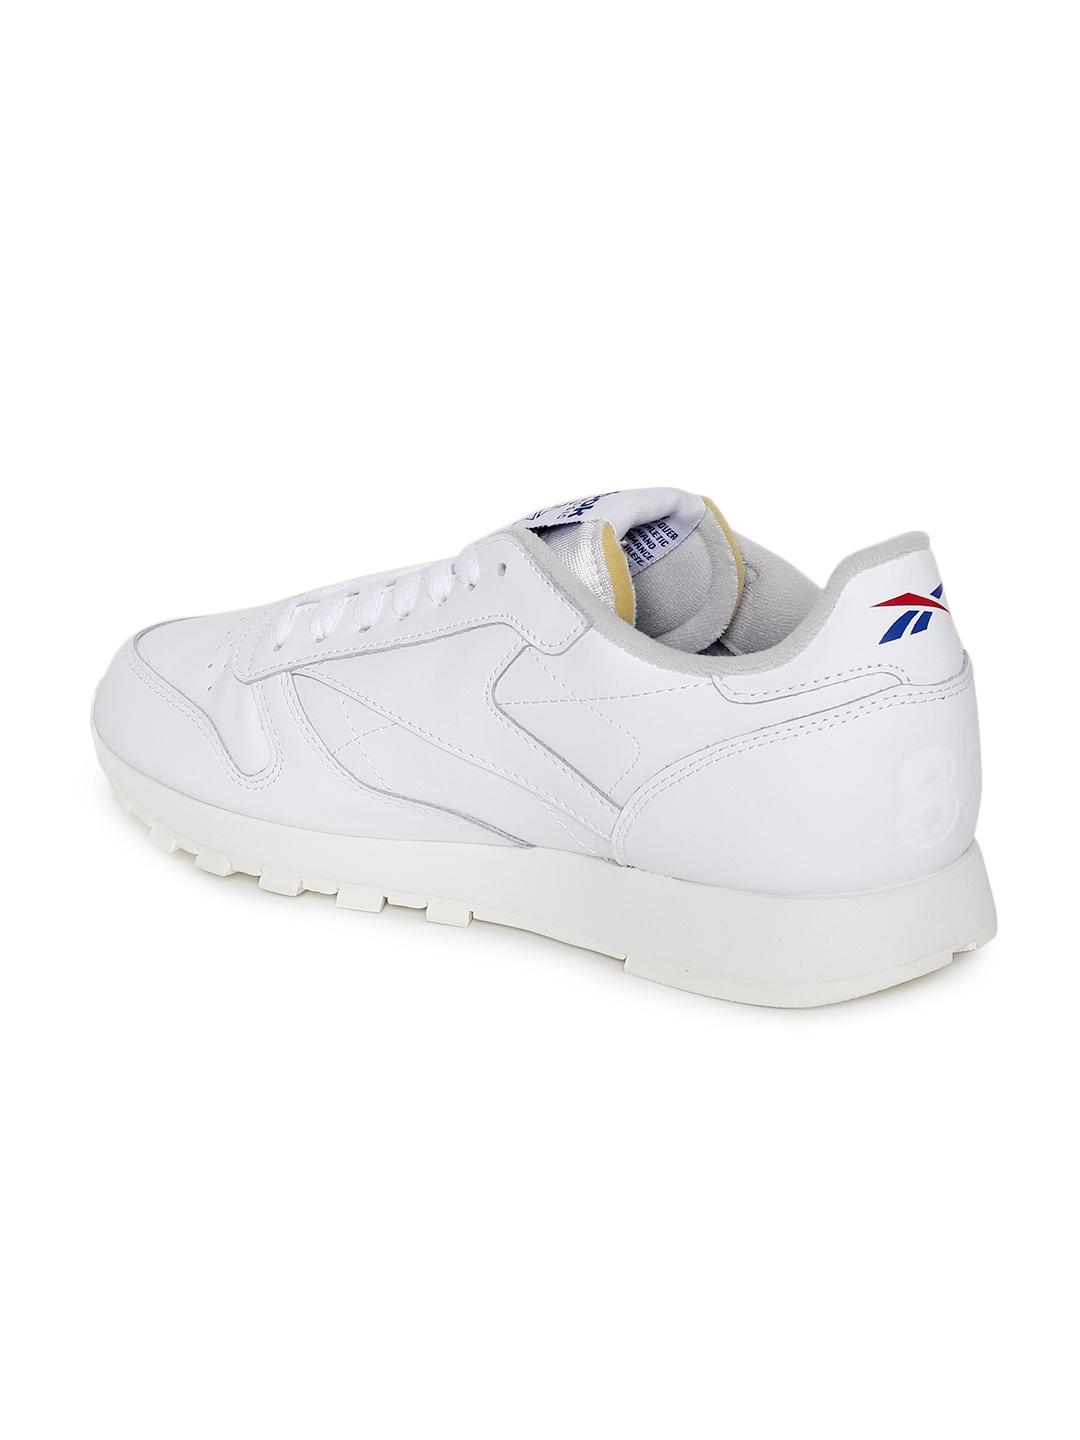 8a56b29e5f2 Buy Reebok Classics Men CL LEATHER MU White Sneakers - Casual Shoes ...